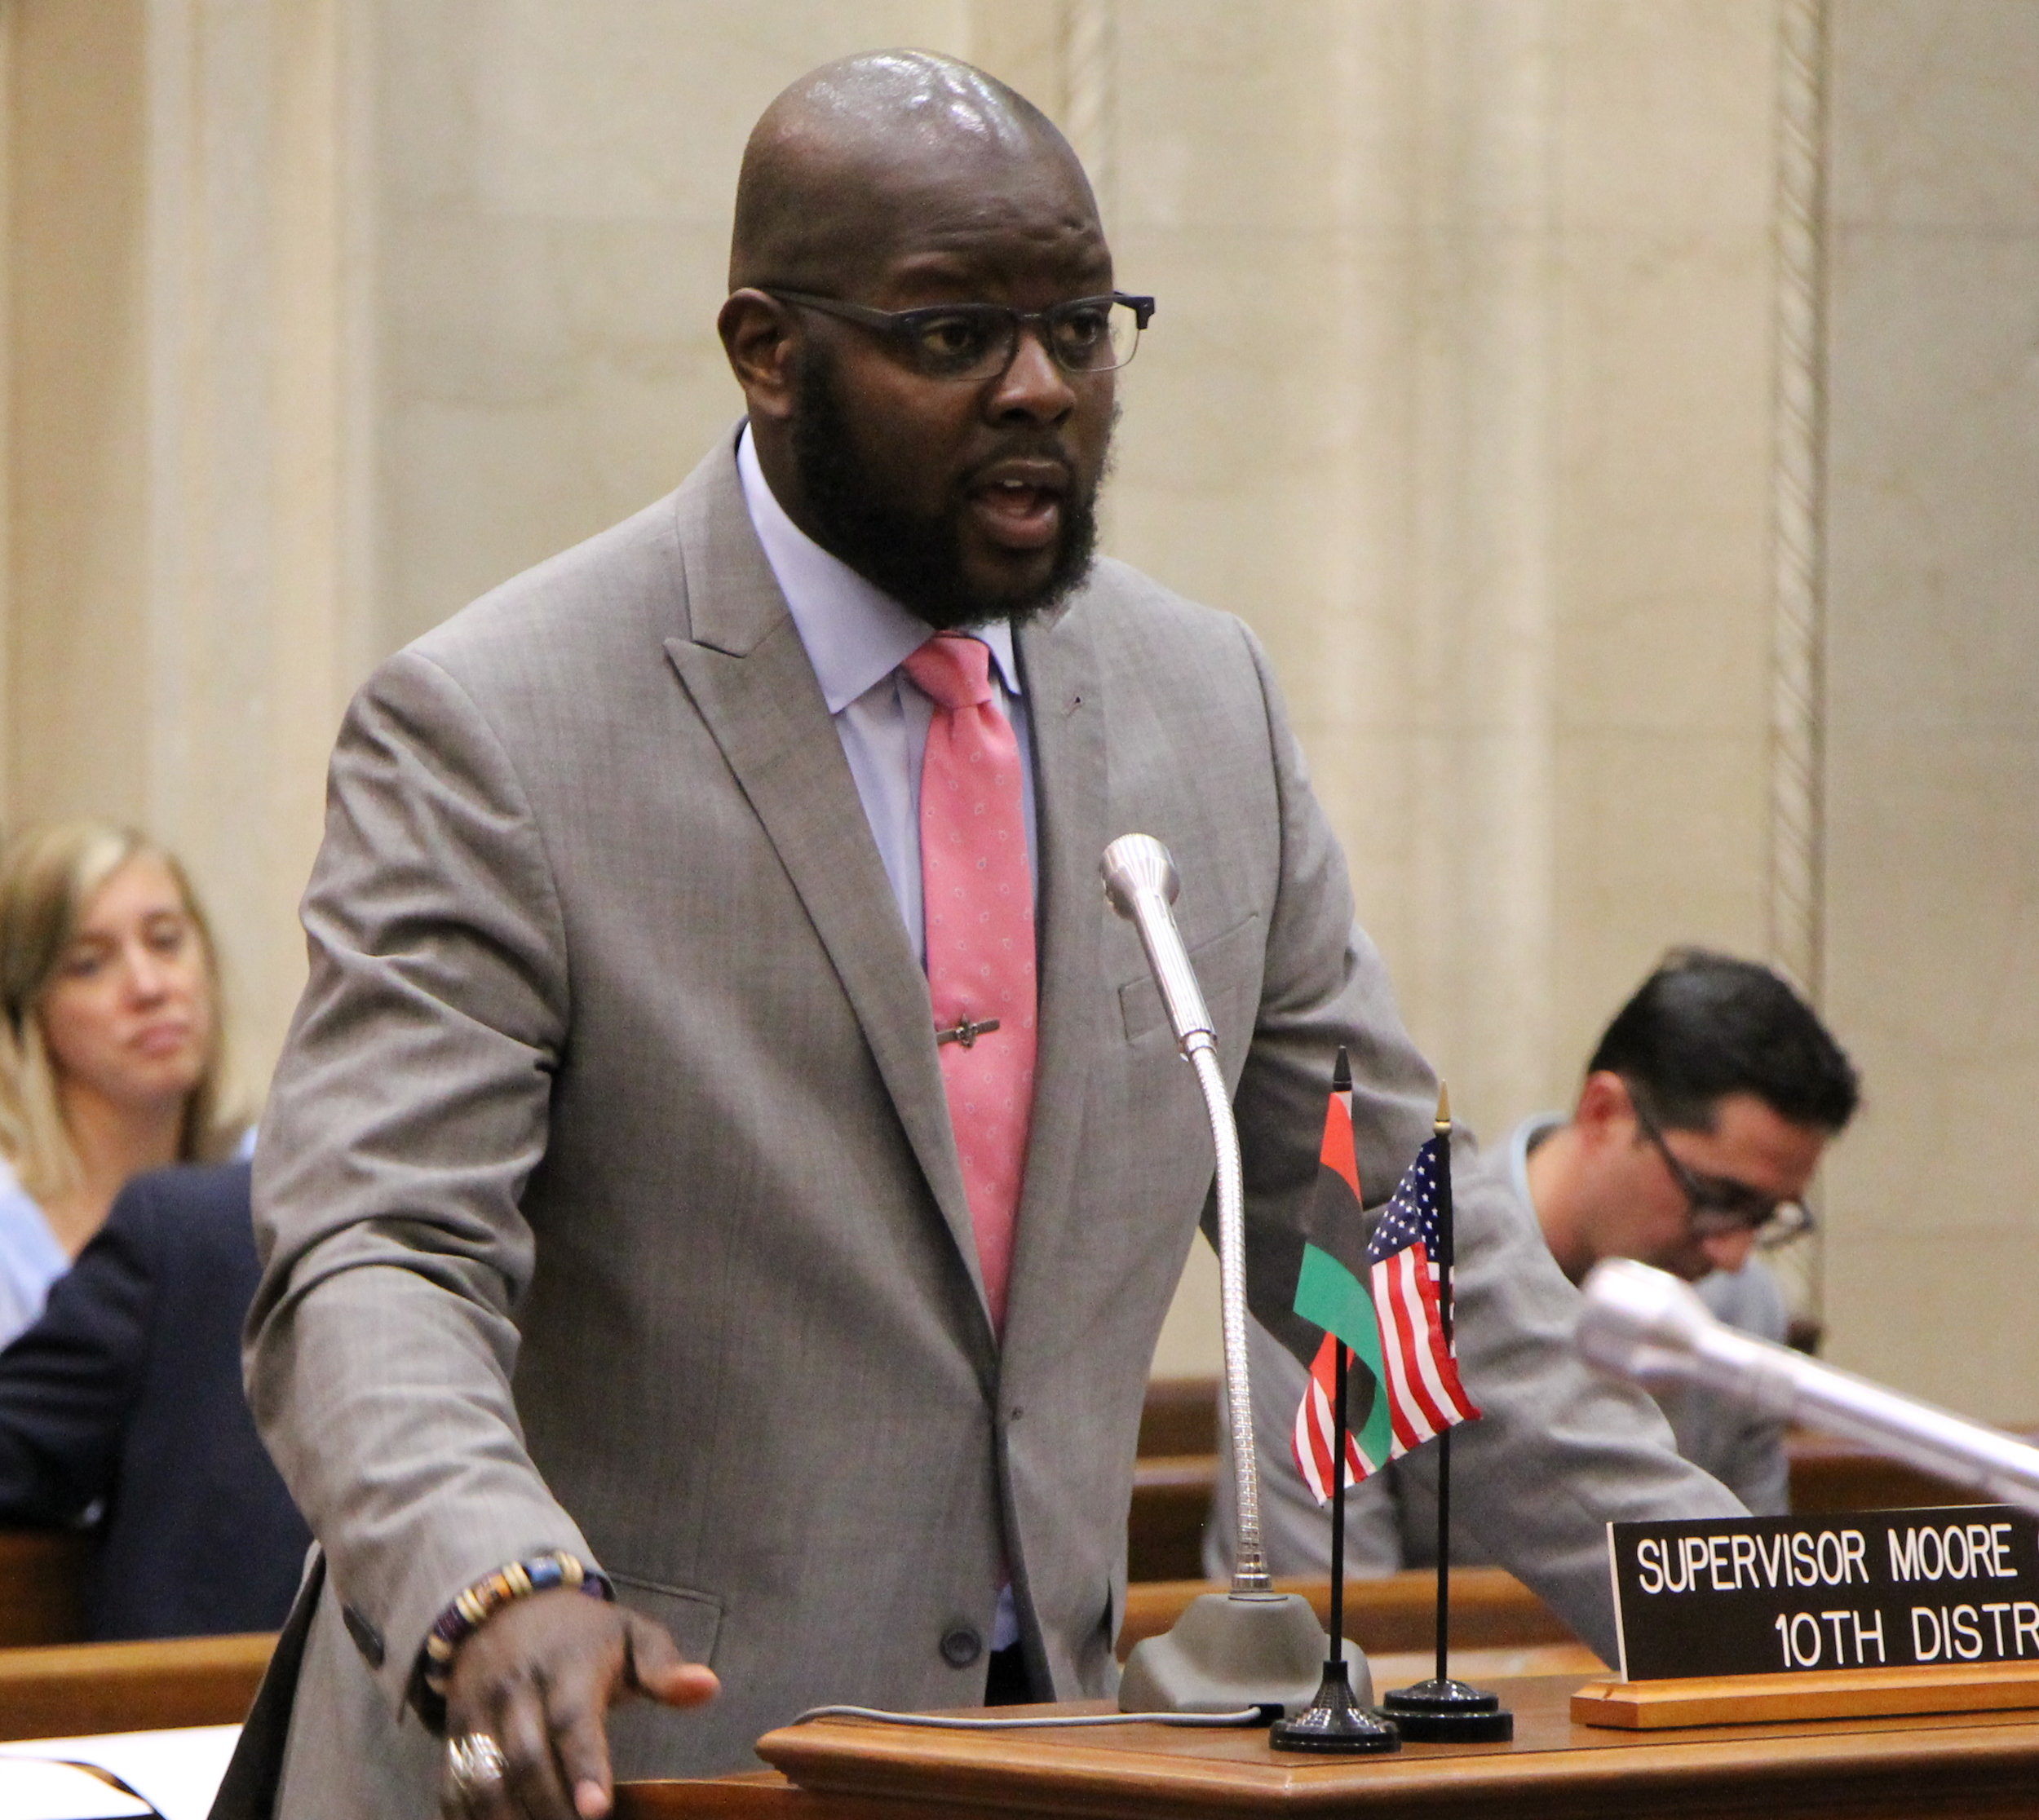 As County Supervisor for the 10th District, Supreme works for the people every day. He is a member of the Finance Committee, which sets and adopts the Milwaukee County Budget, and he serves as Chair of the Health and Human Needs Committee.  -